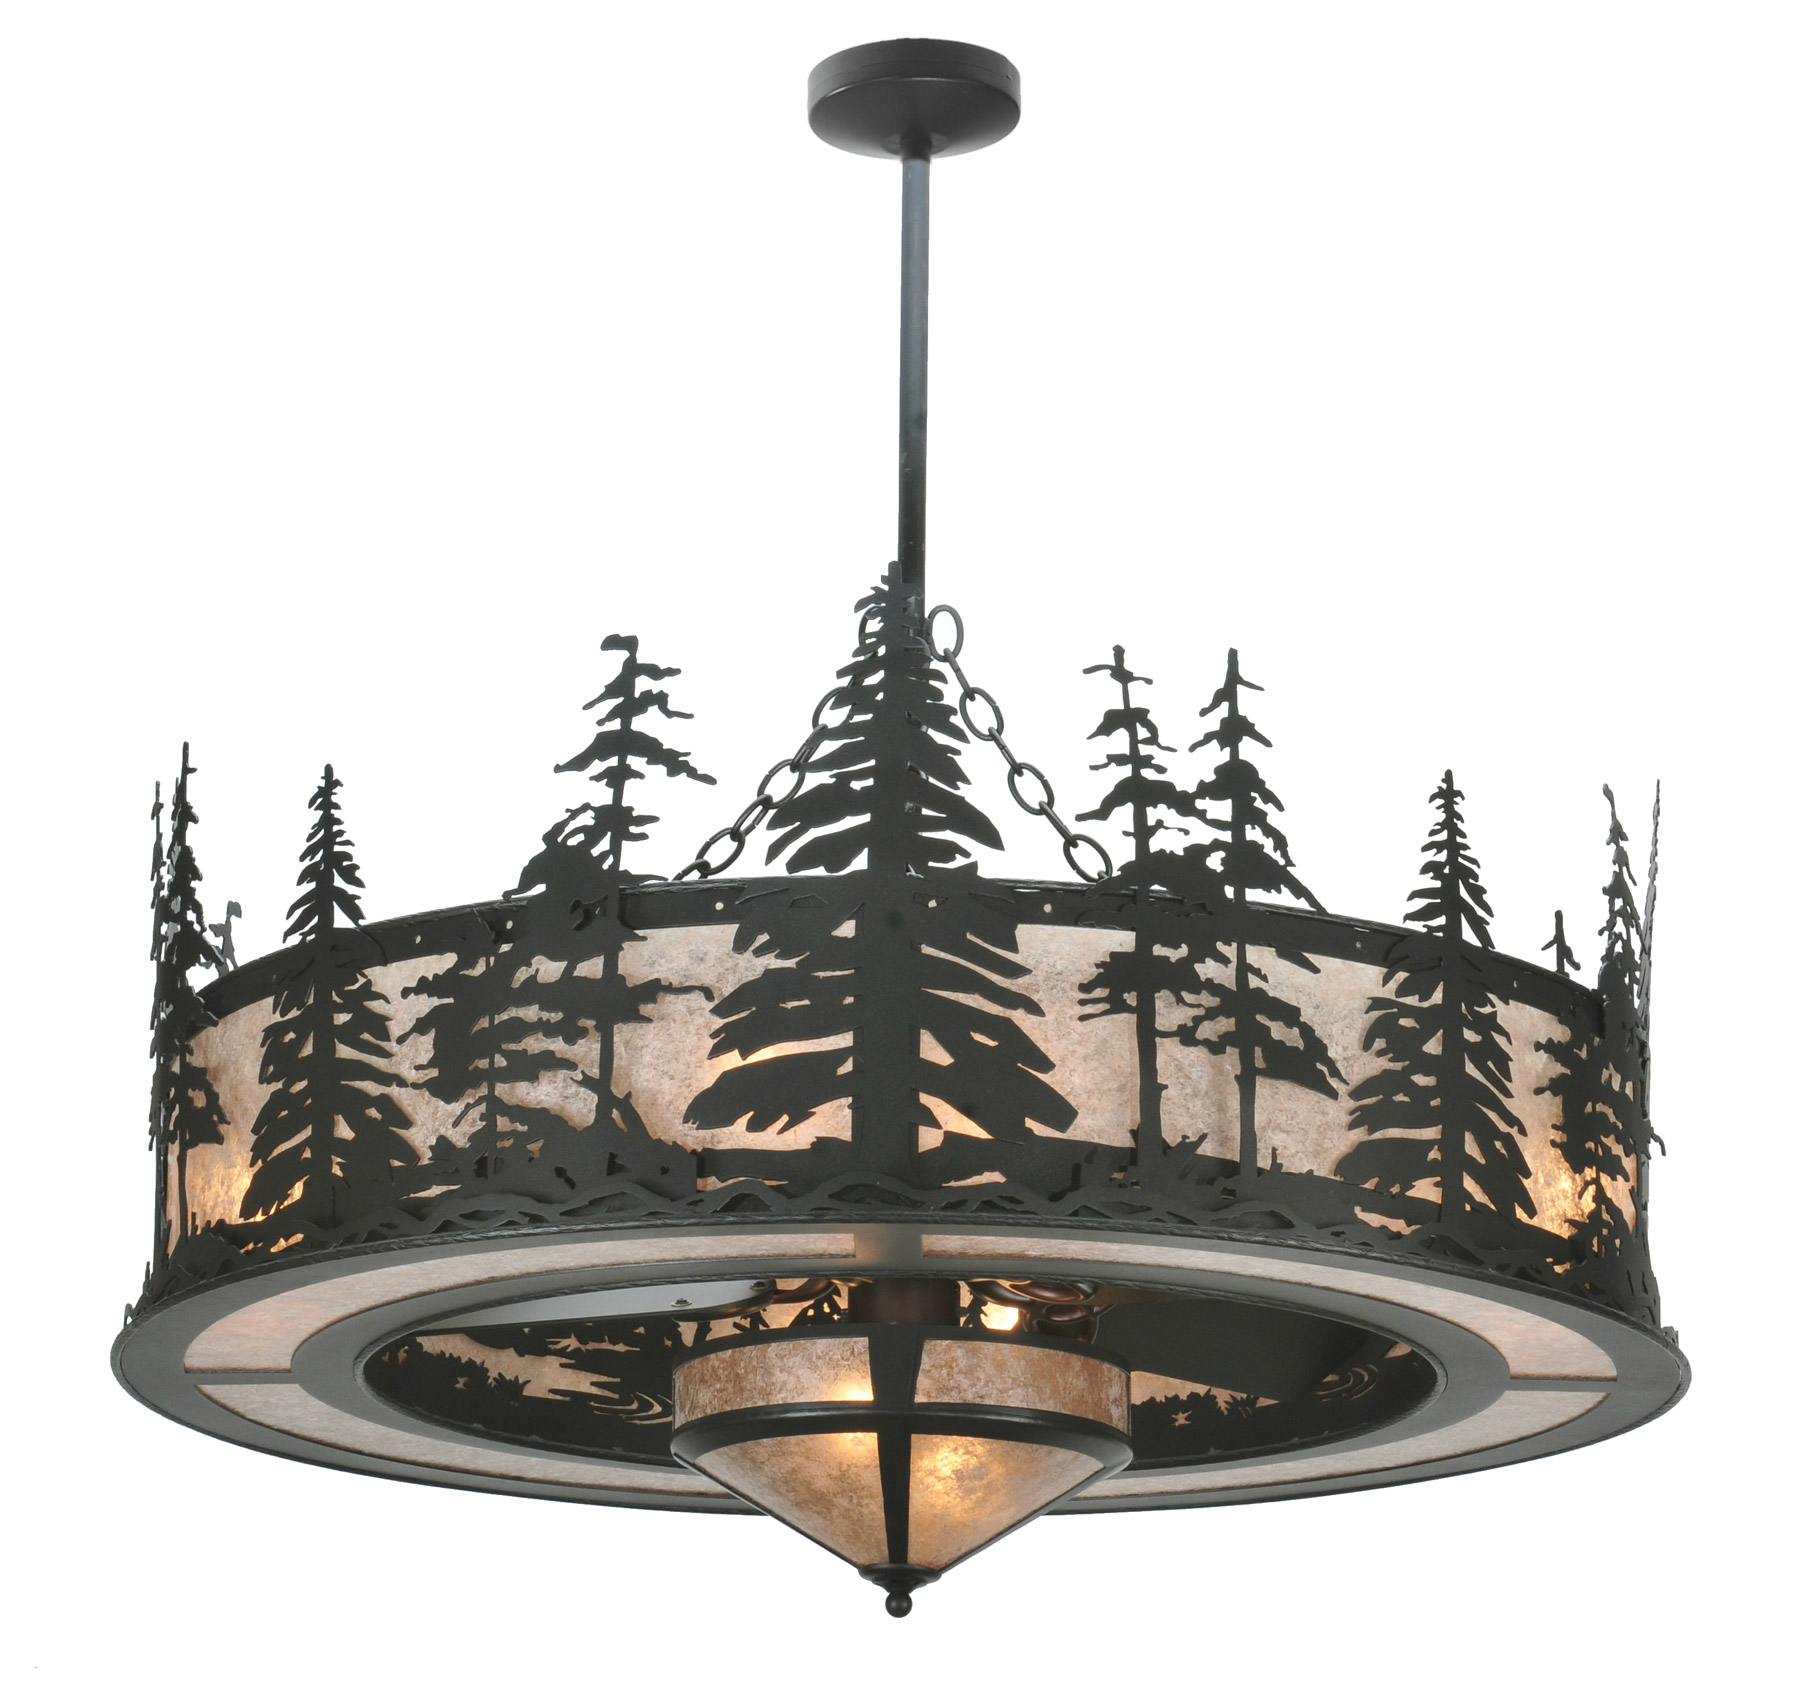 Meyda 108718 Tall Pines Chandel Air With Fan Light